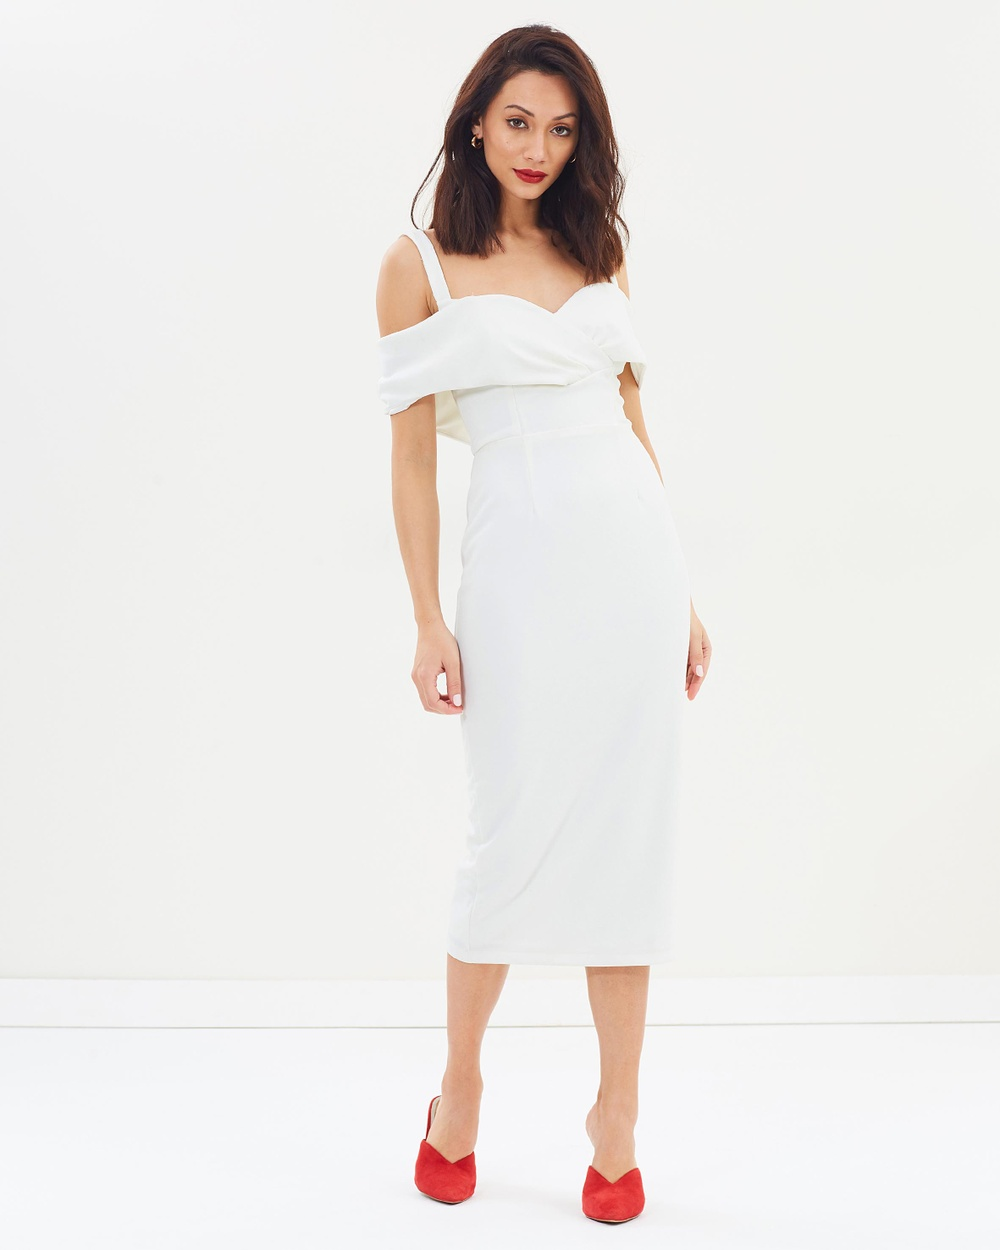 Pasduchas Riviera Midi Dress Dresses Ivory Riviera Midi Dress